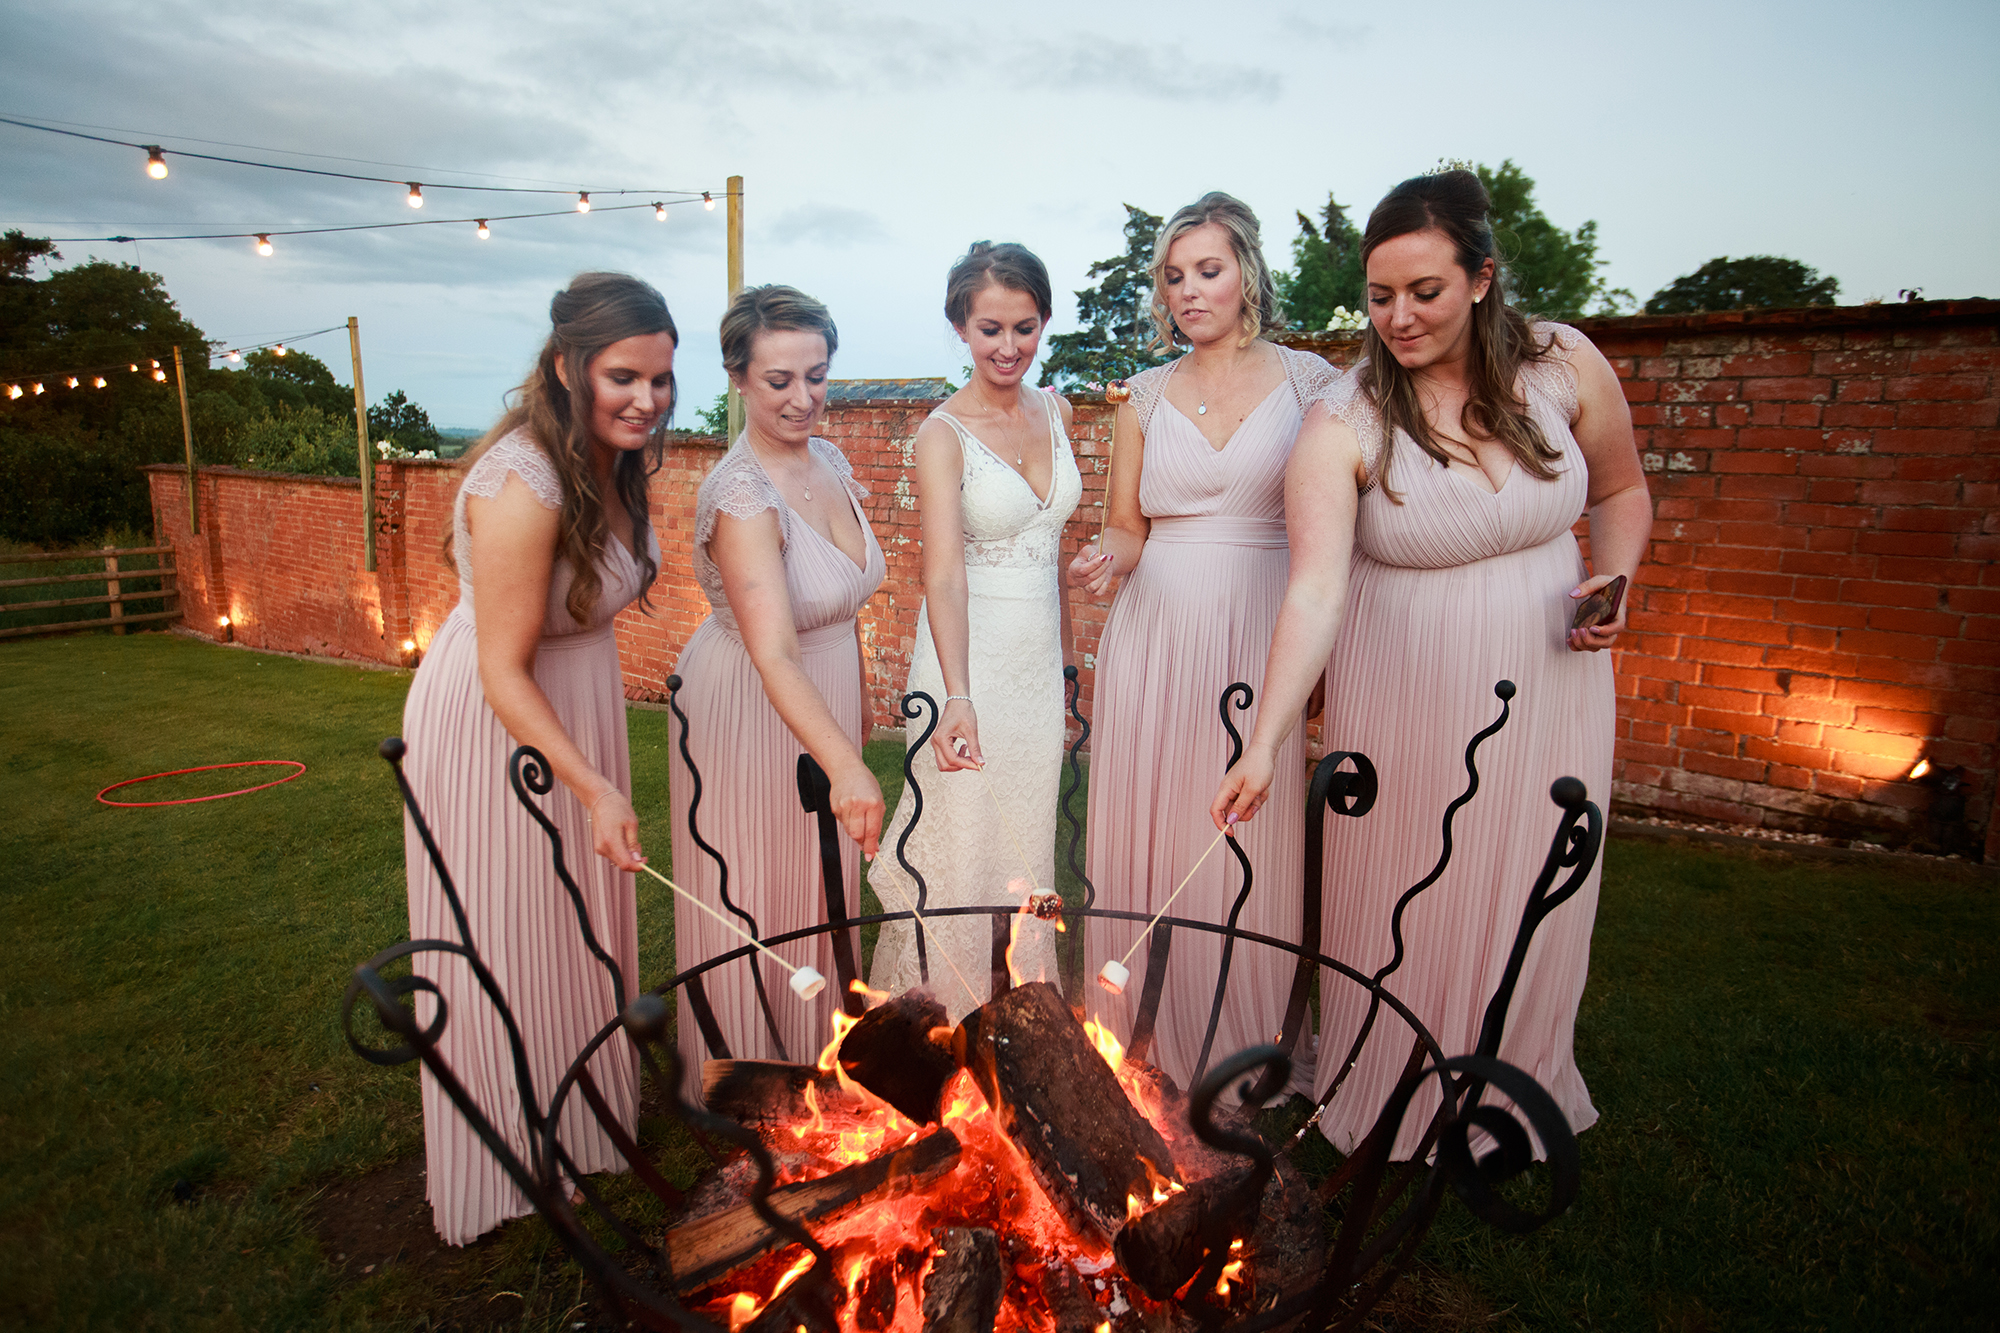 Bride and her maids toast marshmellows over the fire baskets